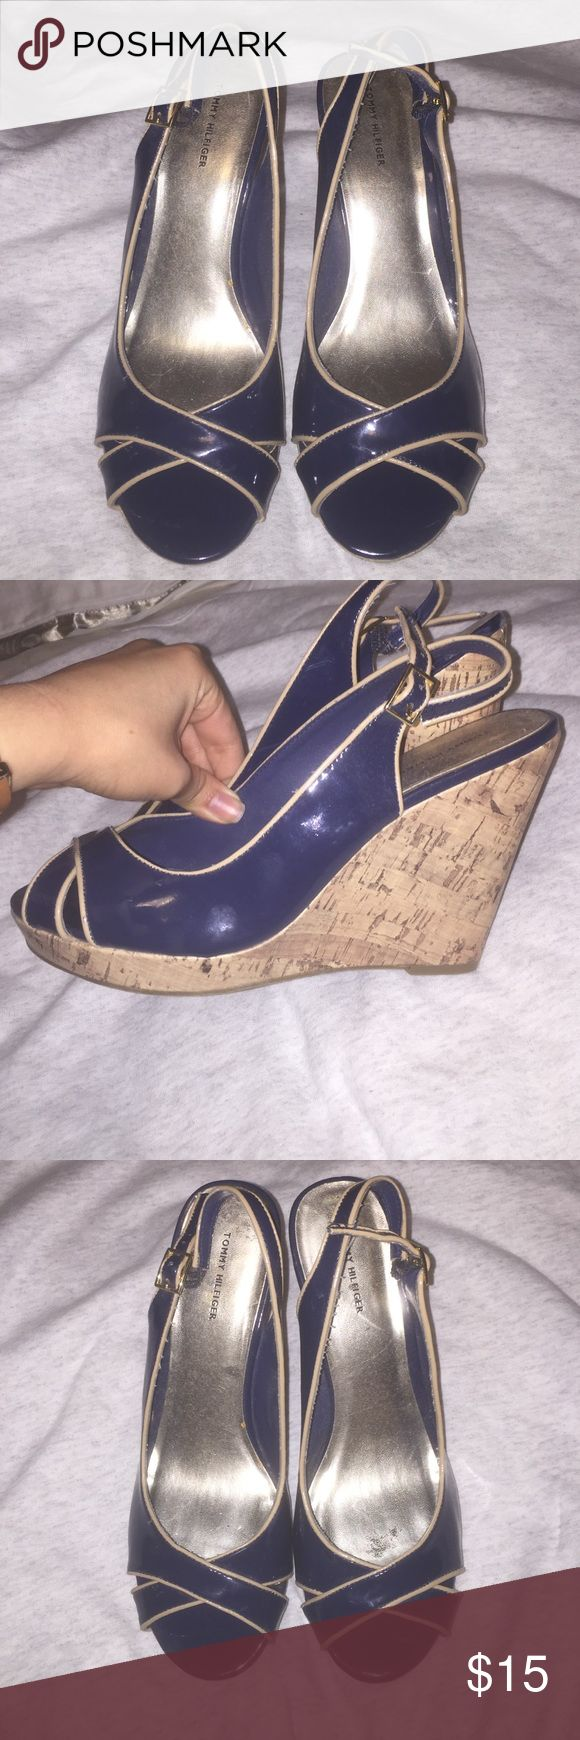 Navy blue Tommy Hilfiger Wedges - Women's size 10 Women's size 10 navy blue Tommy Hilfiger wedges. Work once. Wedges is cork and there is a buckle adjustment at ankle. 4 inch heels. Tommy Hilfiger Shoes Wedges